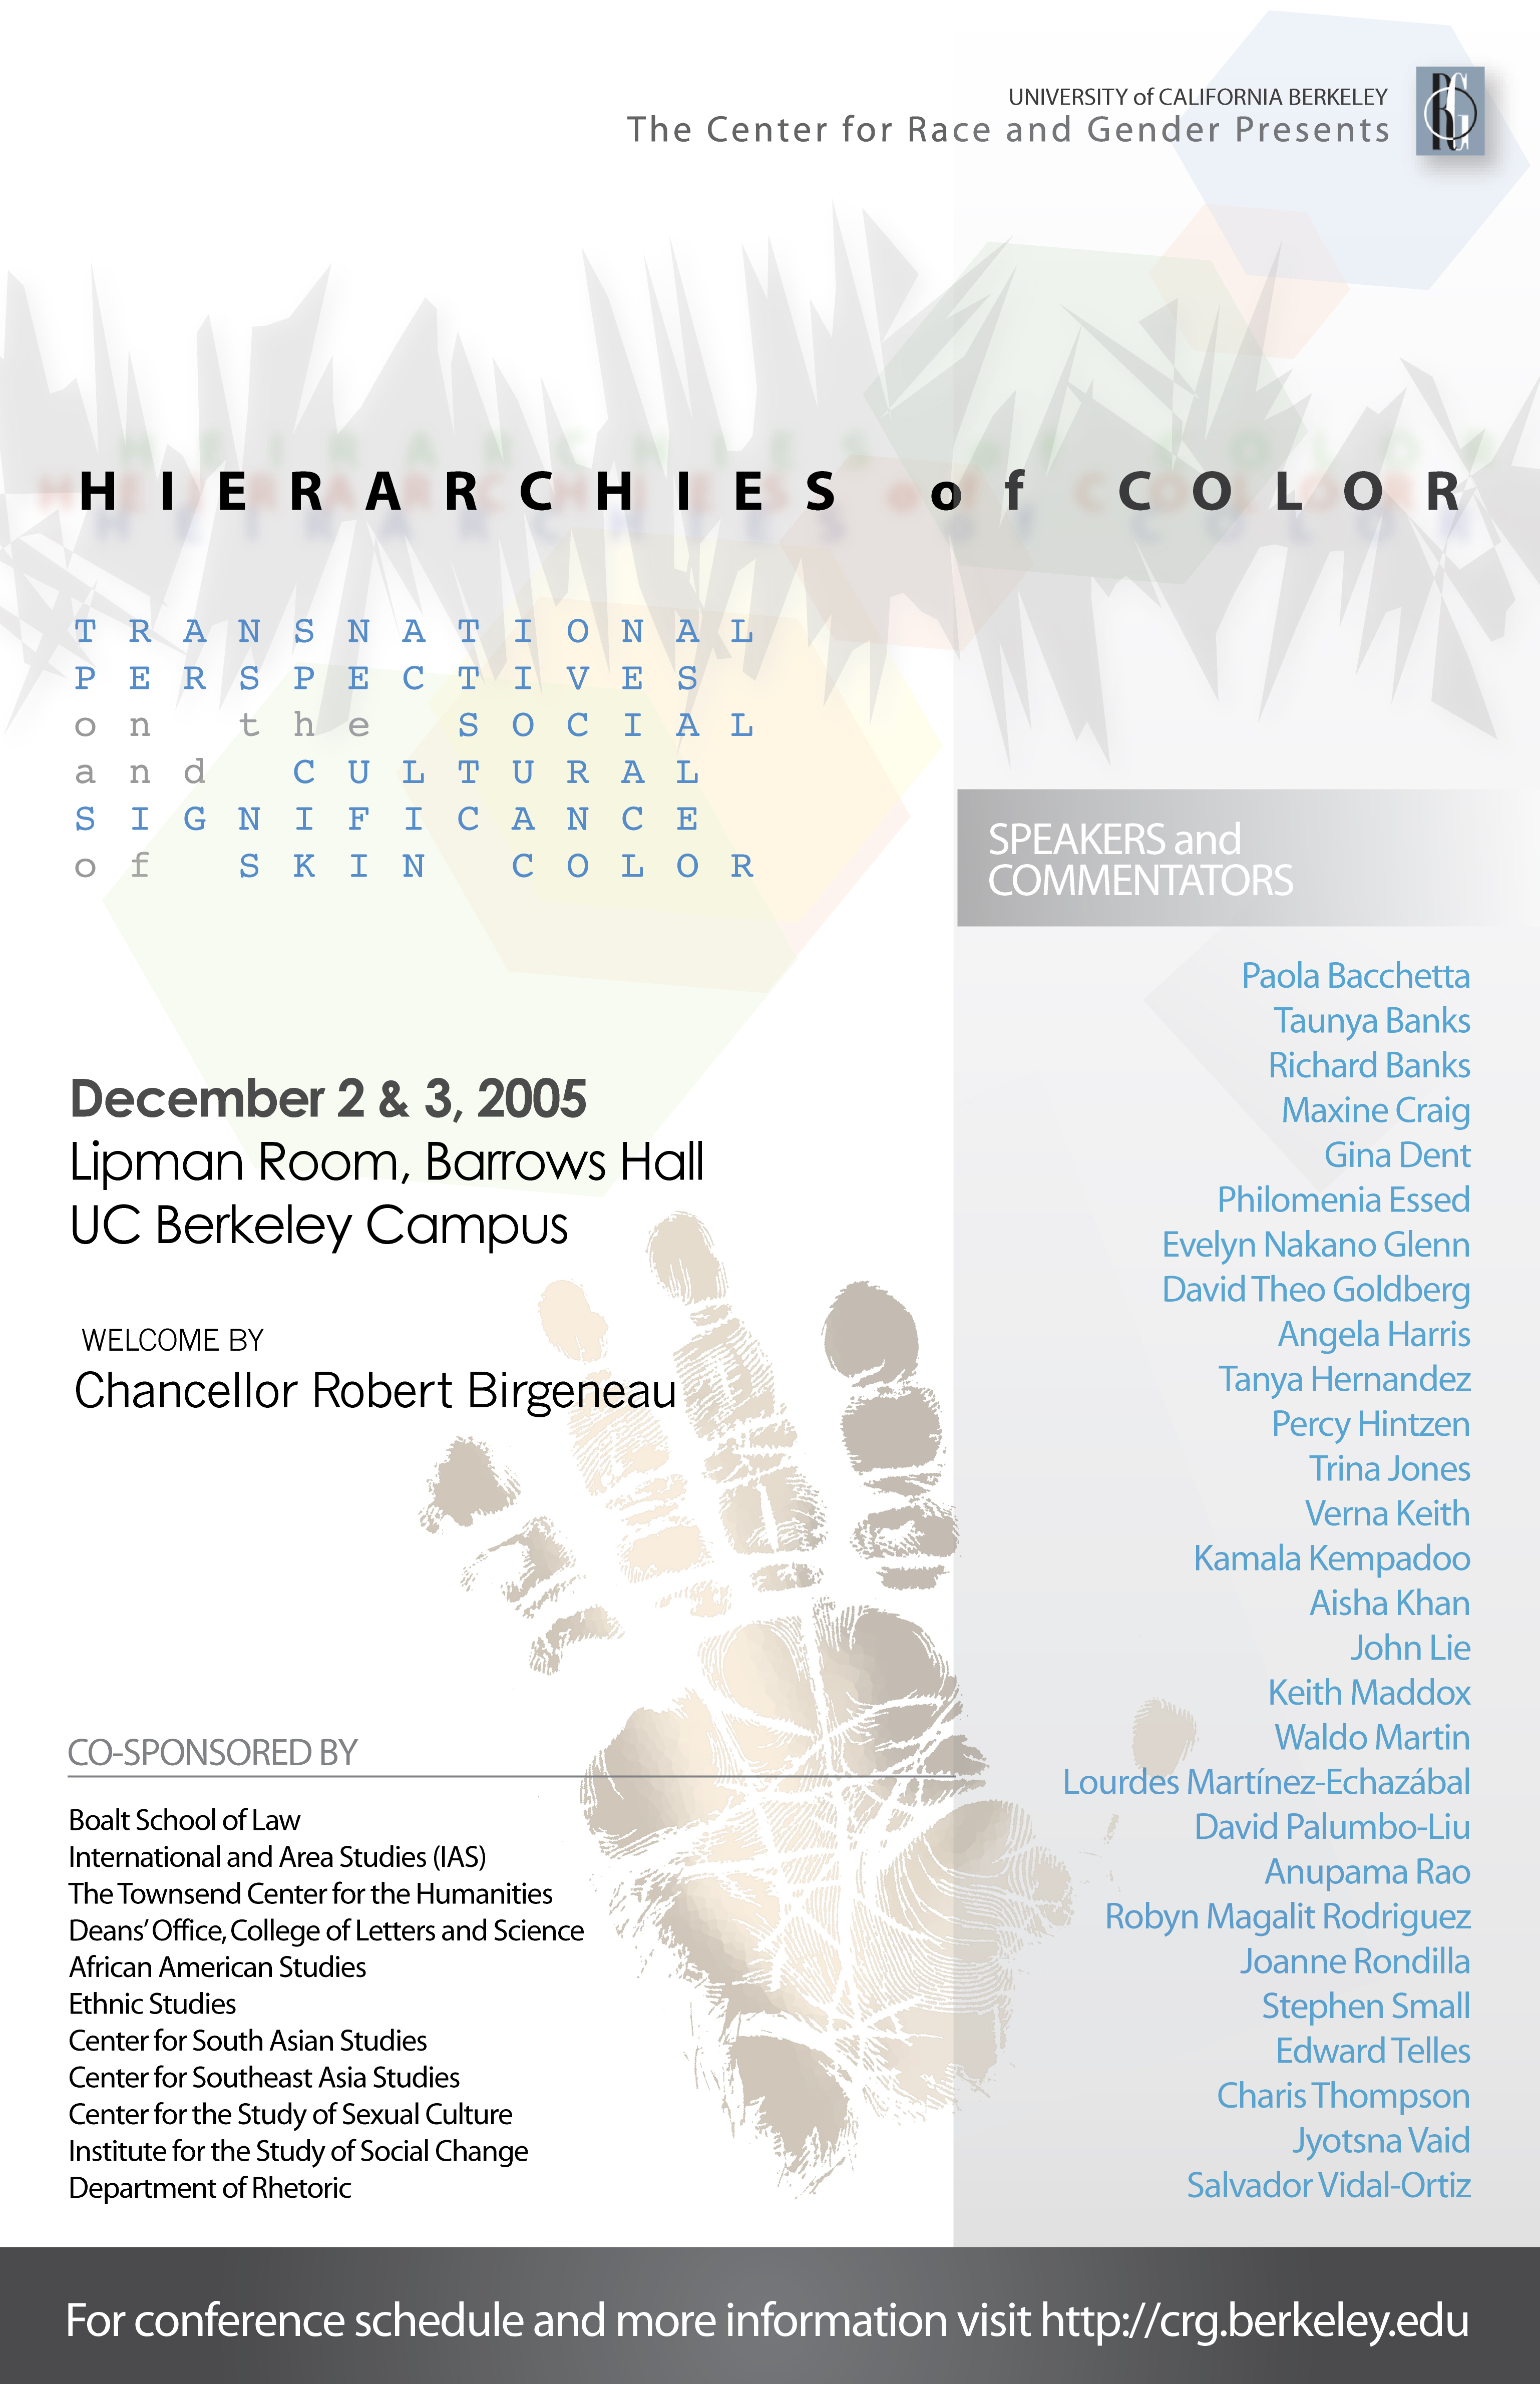 Conference Info – HIERARCHIES OF COLOR CONFERENCE